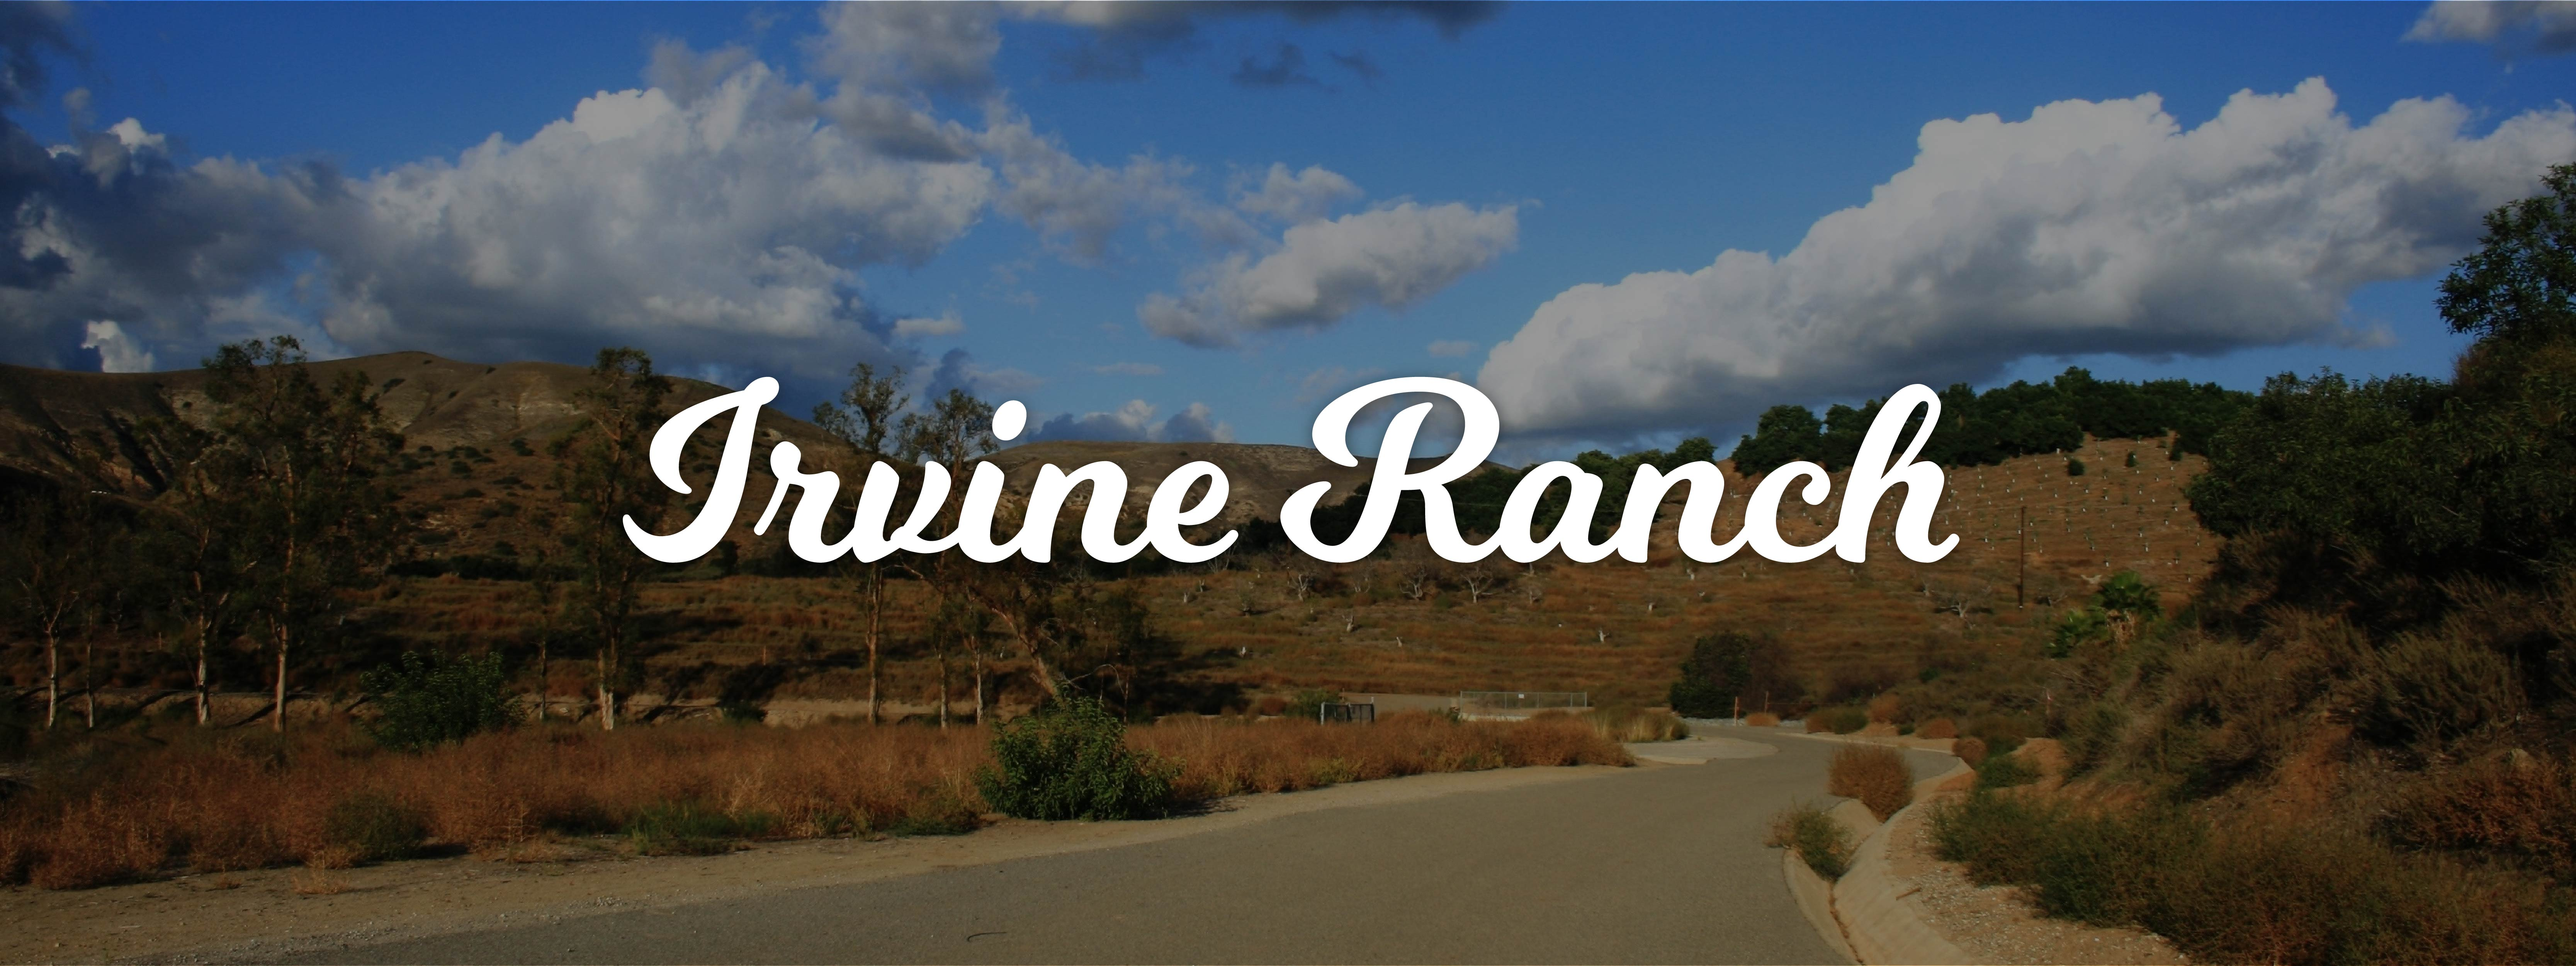 Community Spotlight: Irvine Ranch